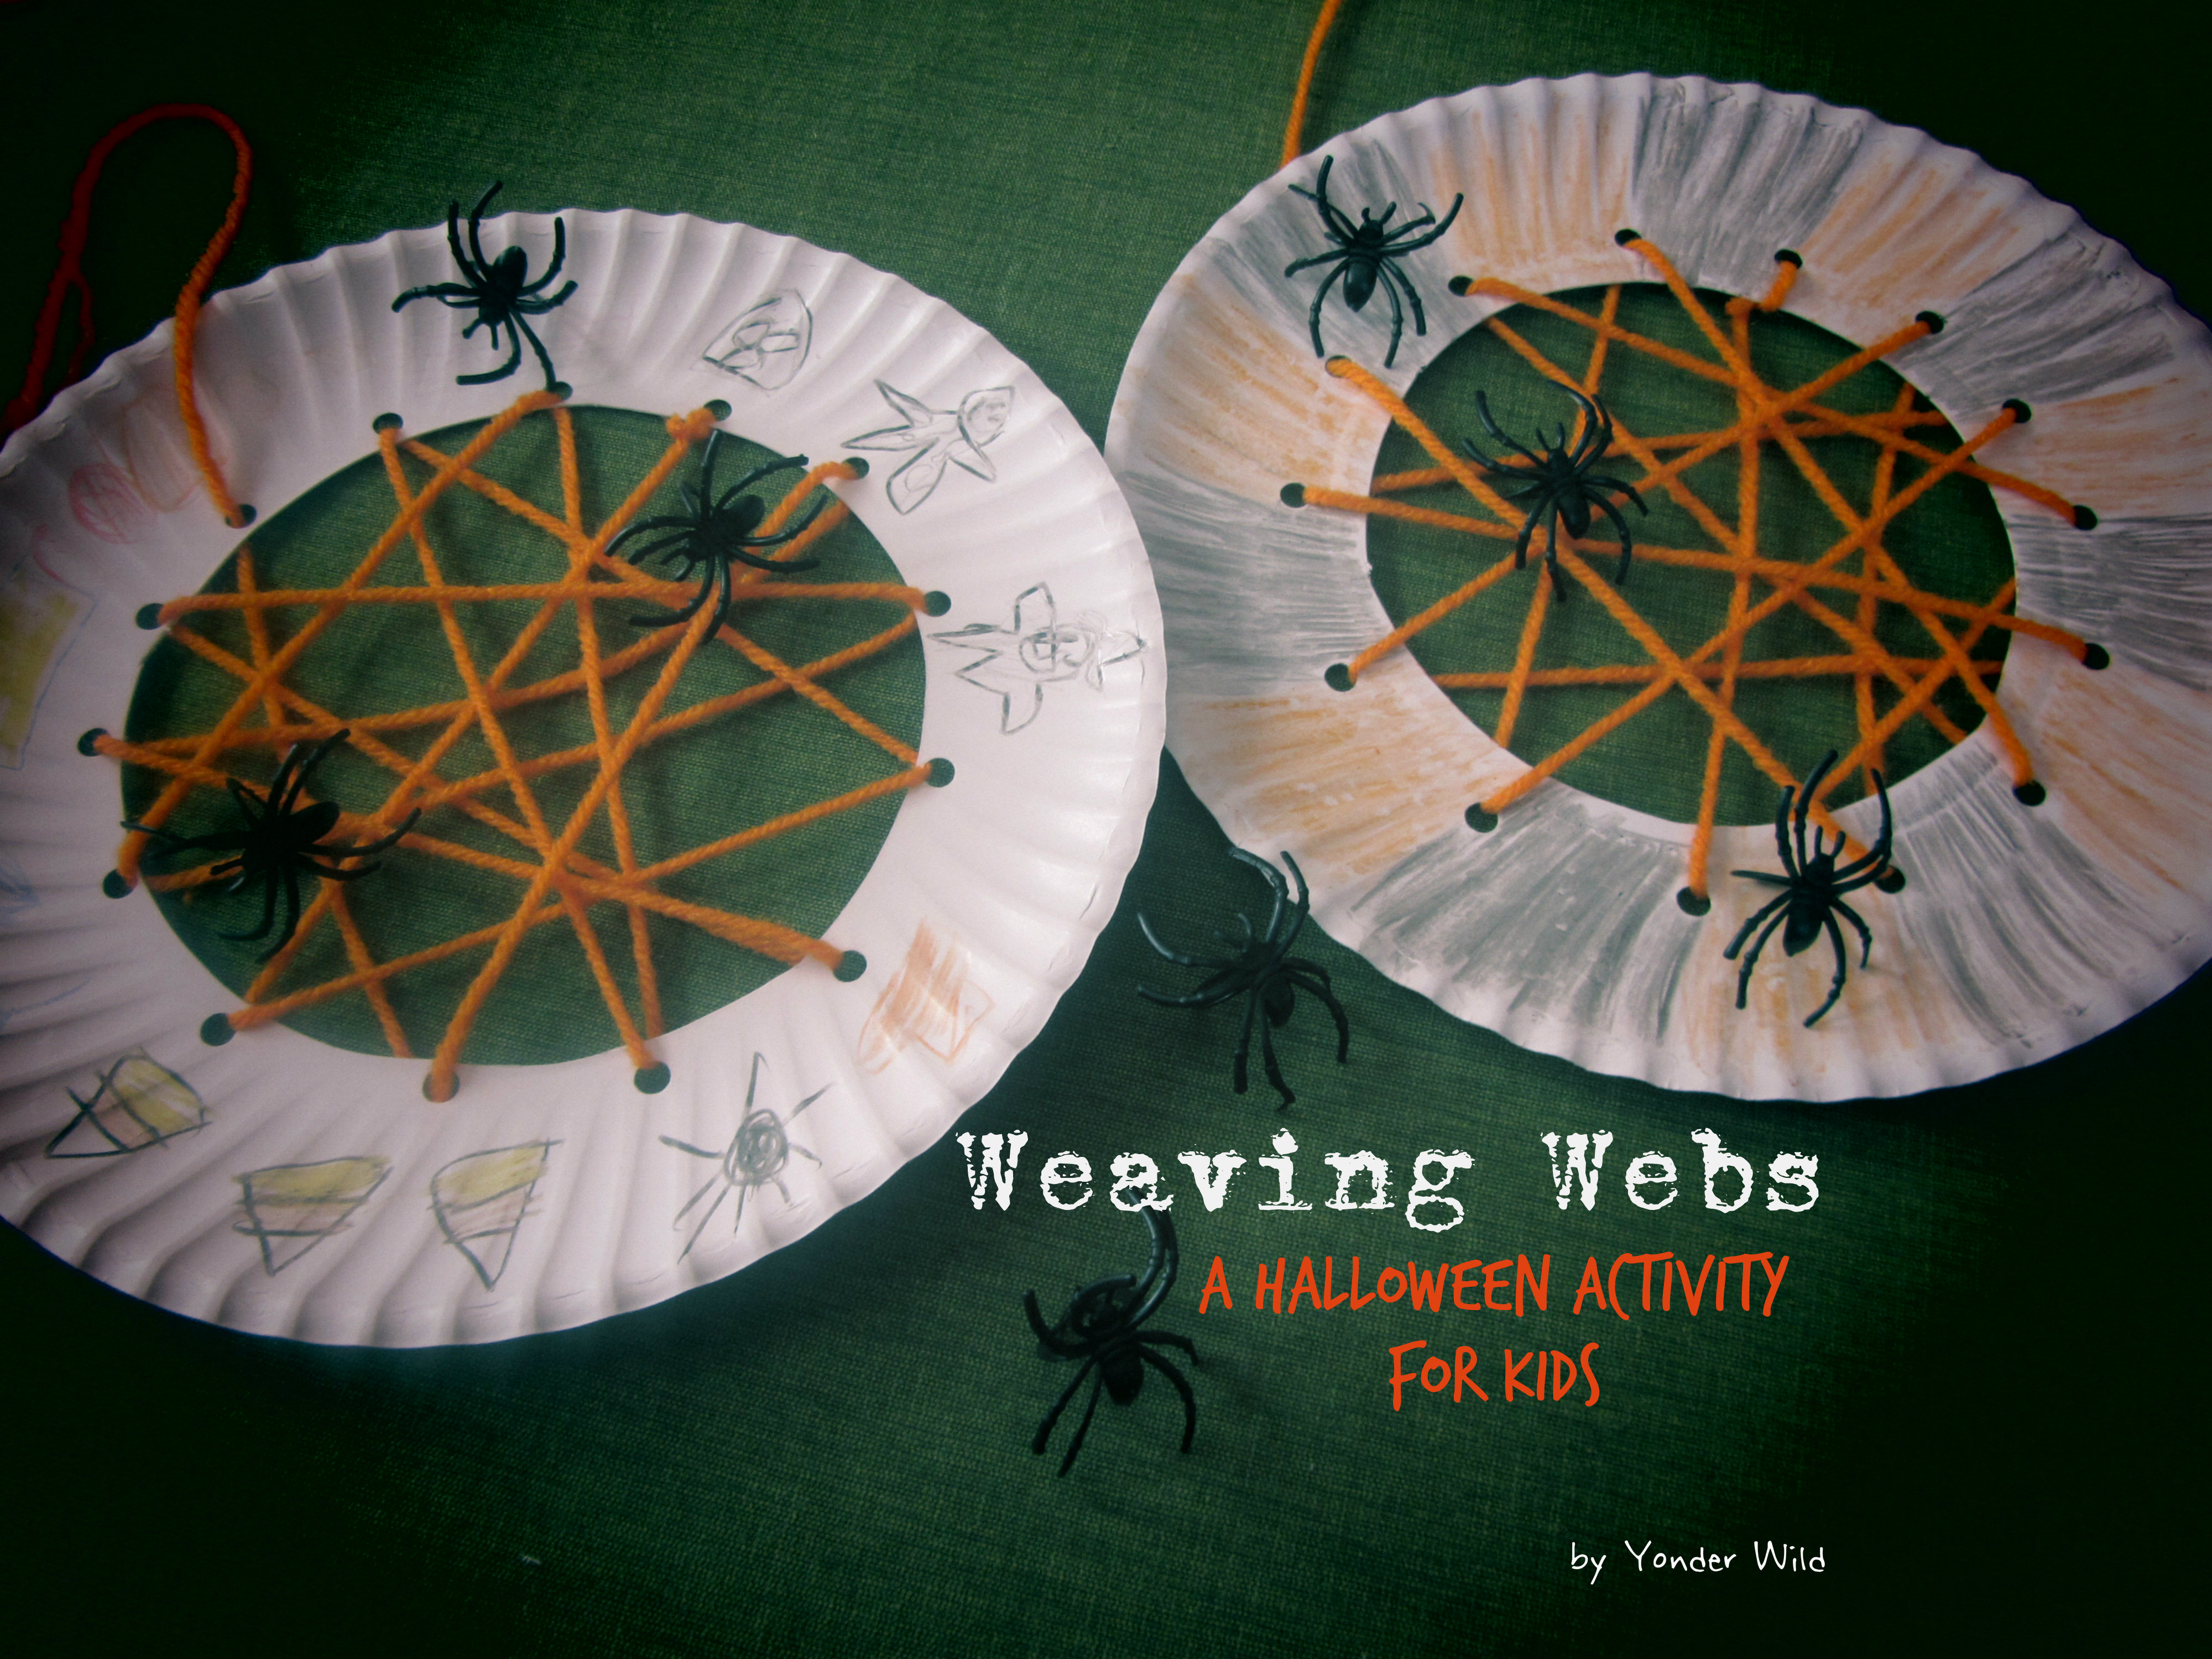 Weaving Webs A Halloween Activity For Kids